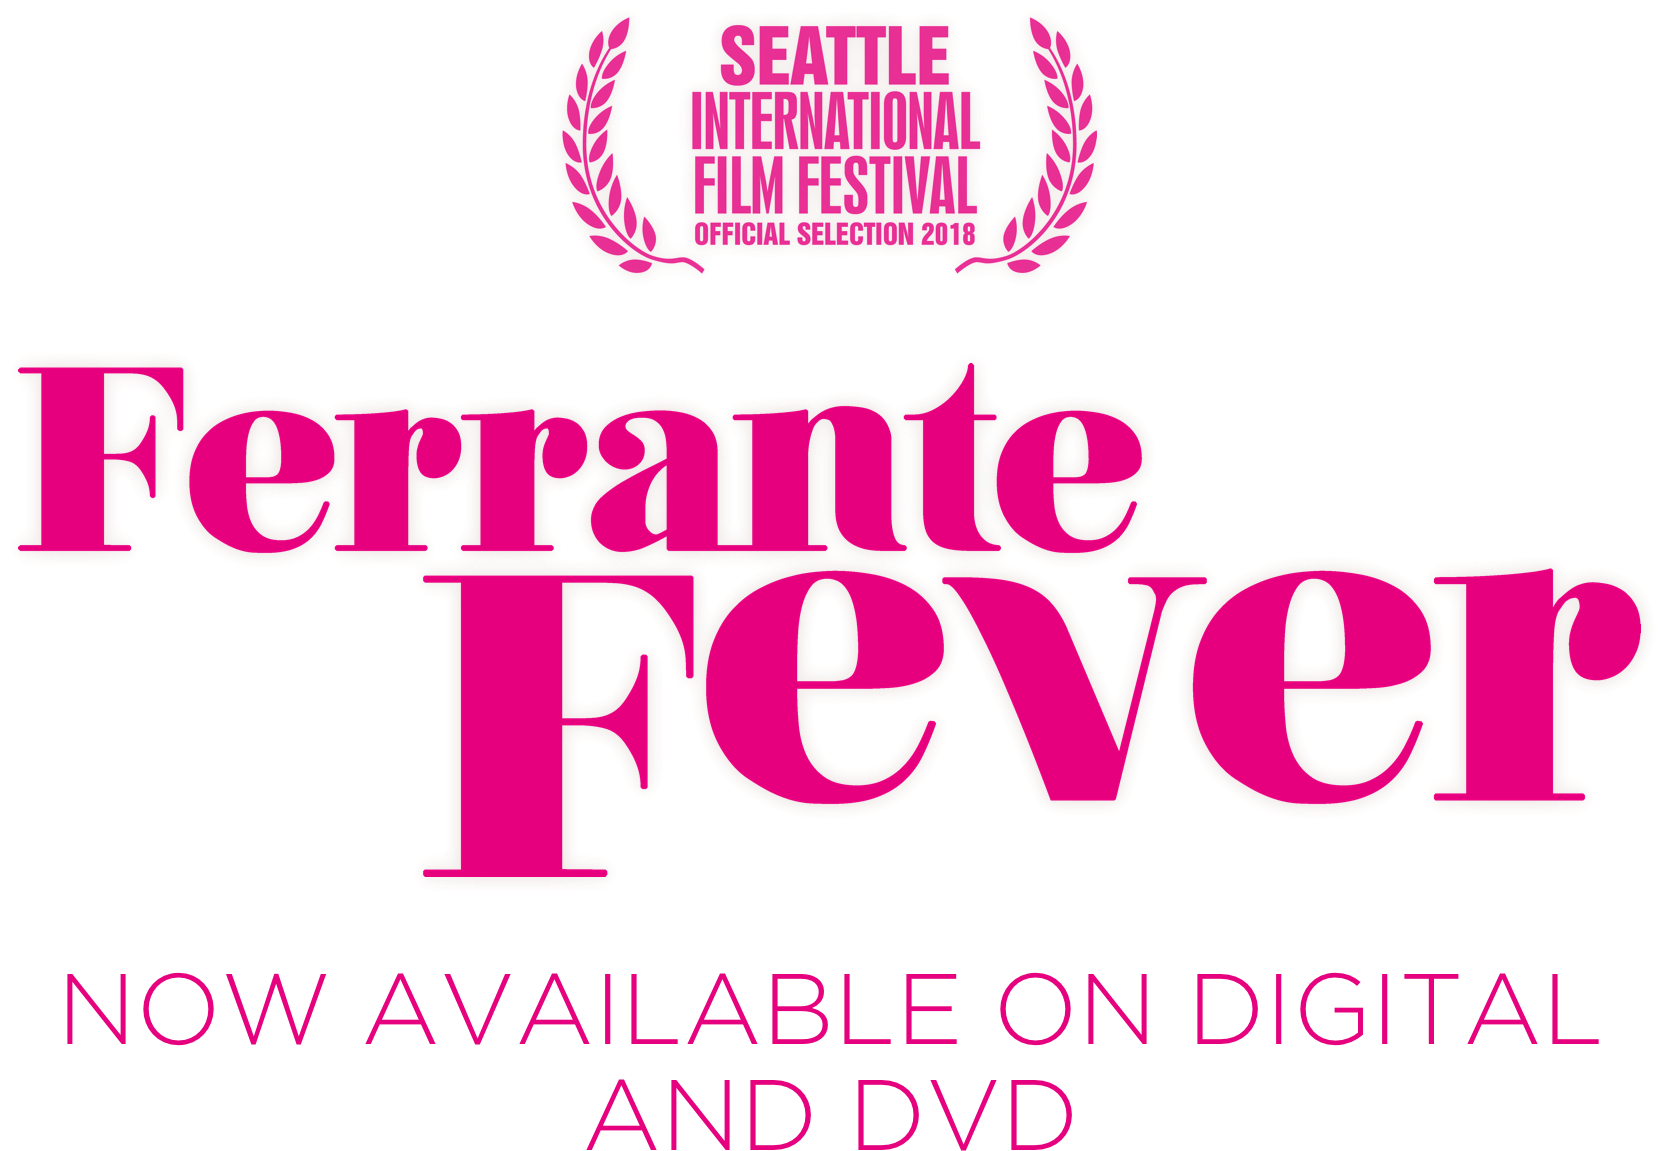 Ferrante Fever | About | In Theaters March 8